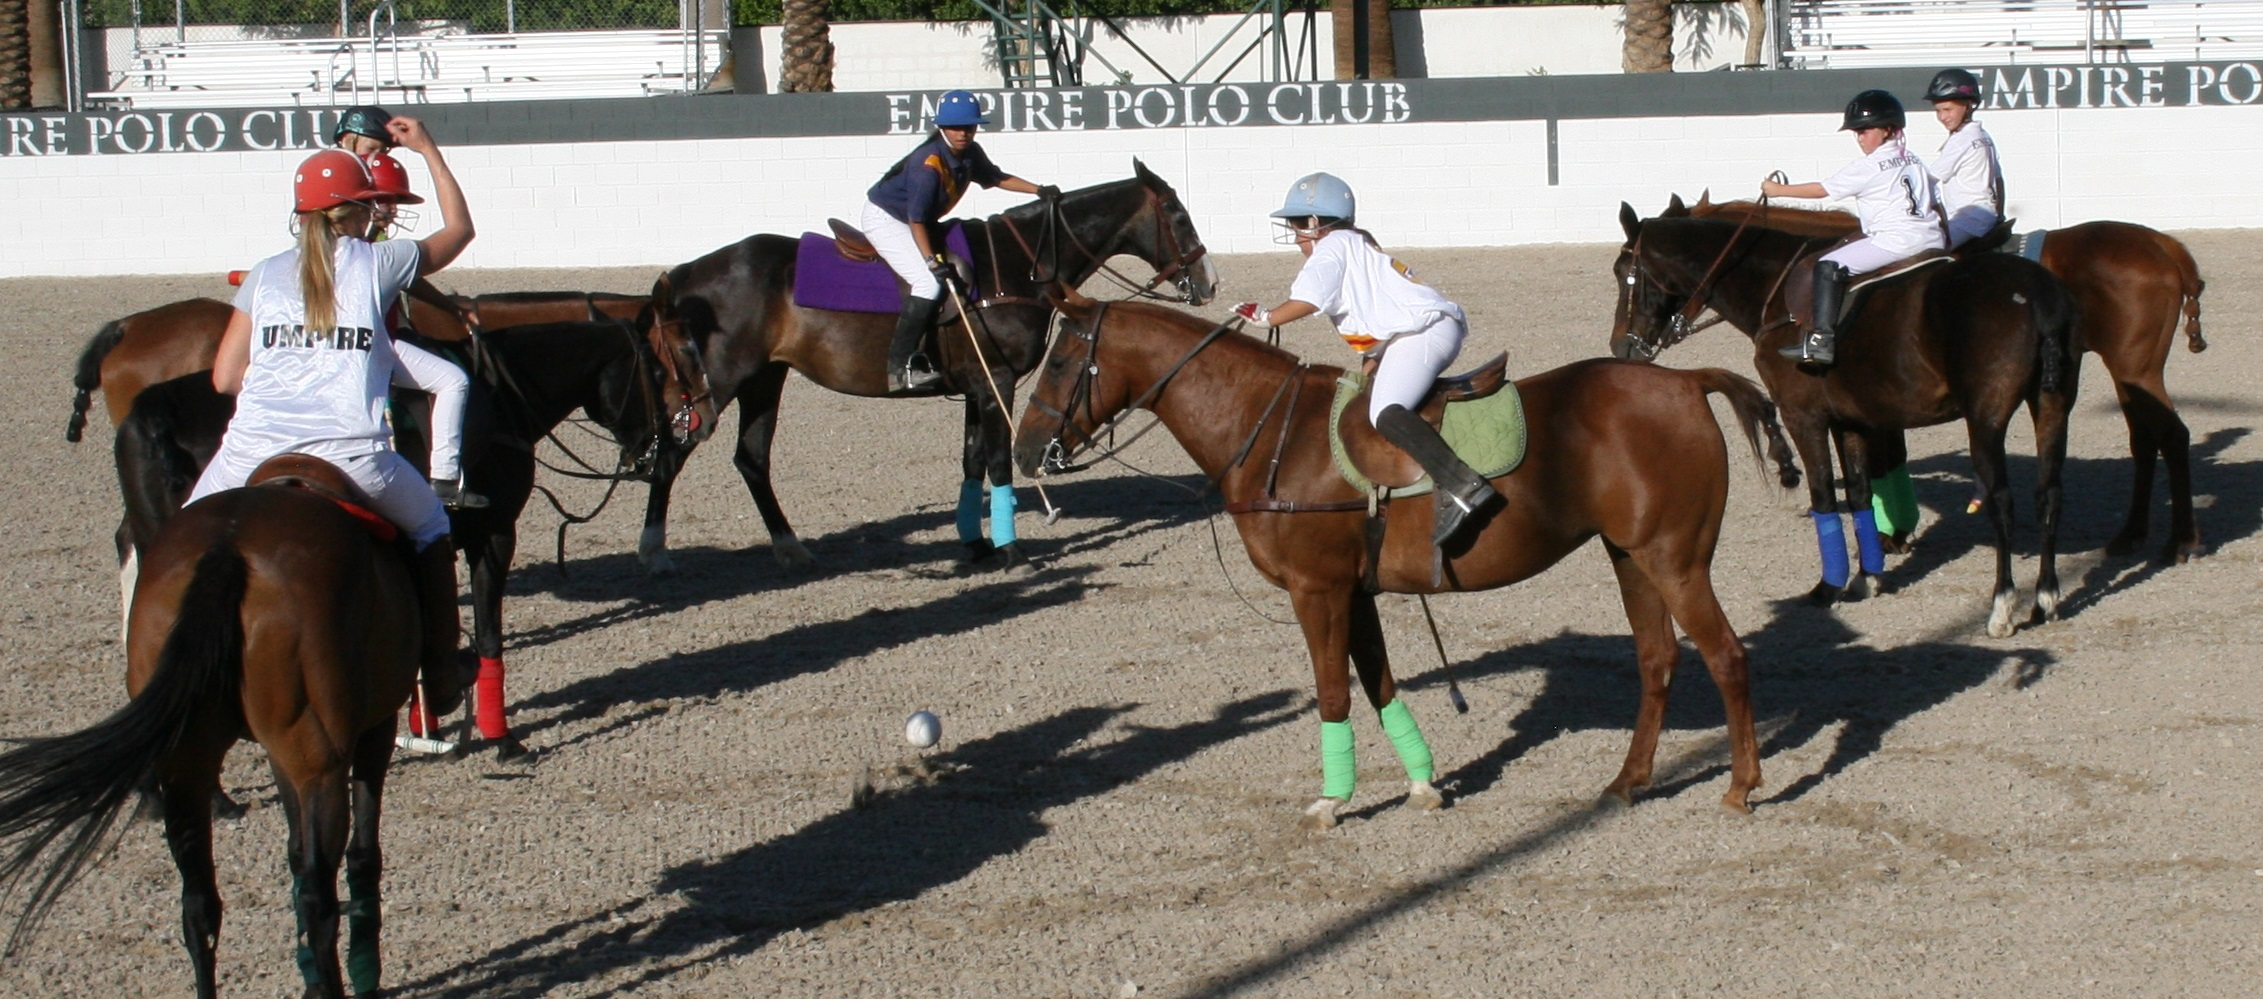 Summer Polo Camp for Kids @ Empire Polo Club